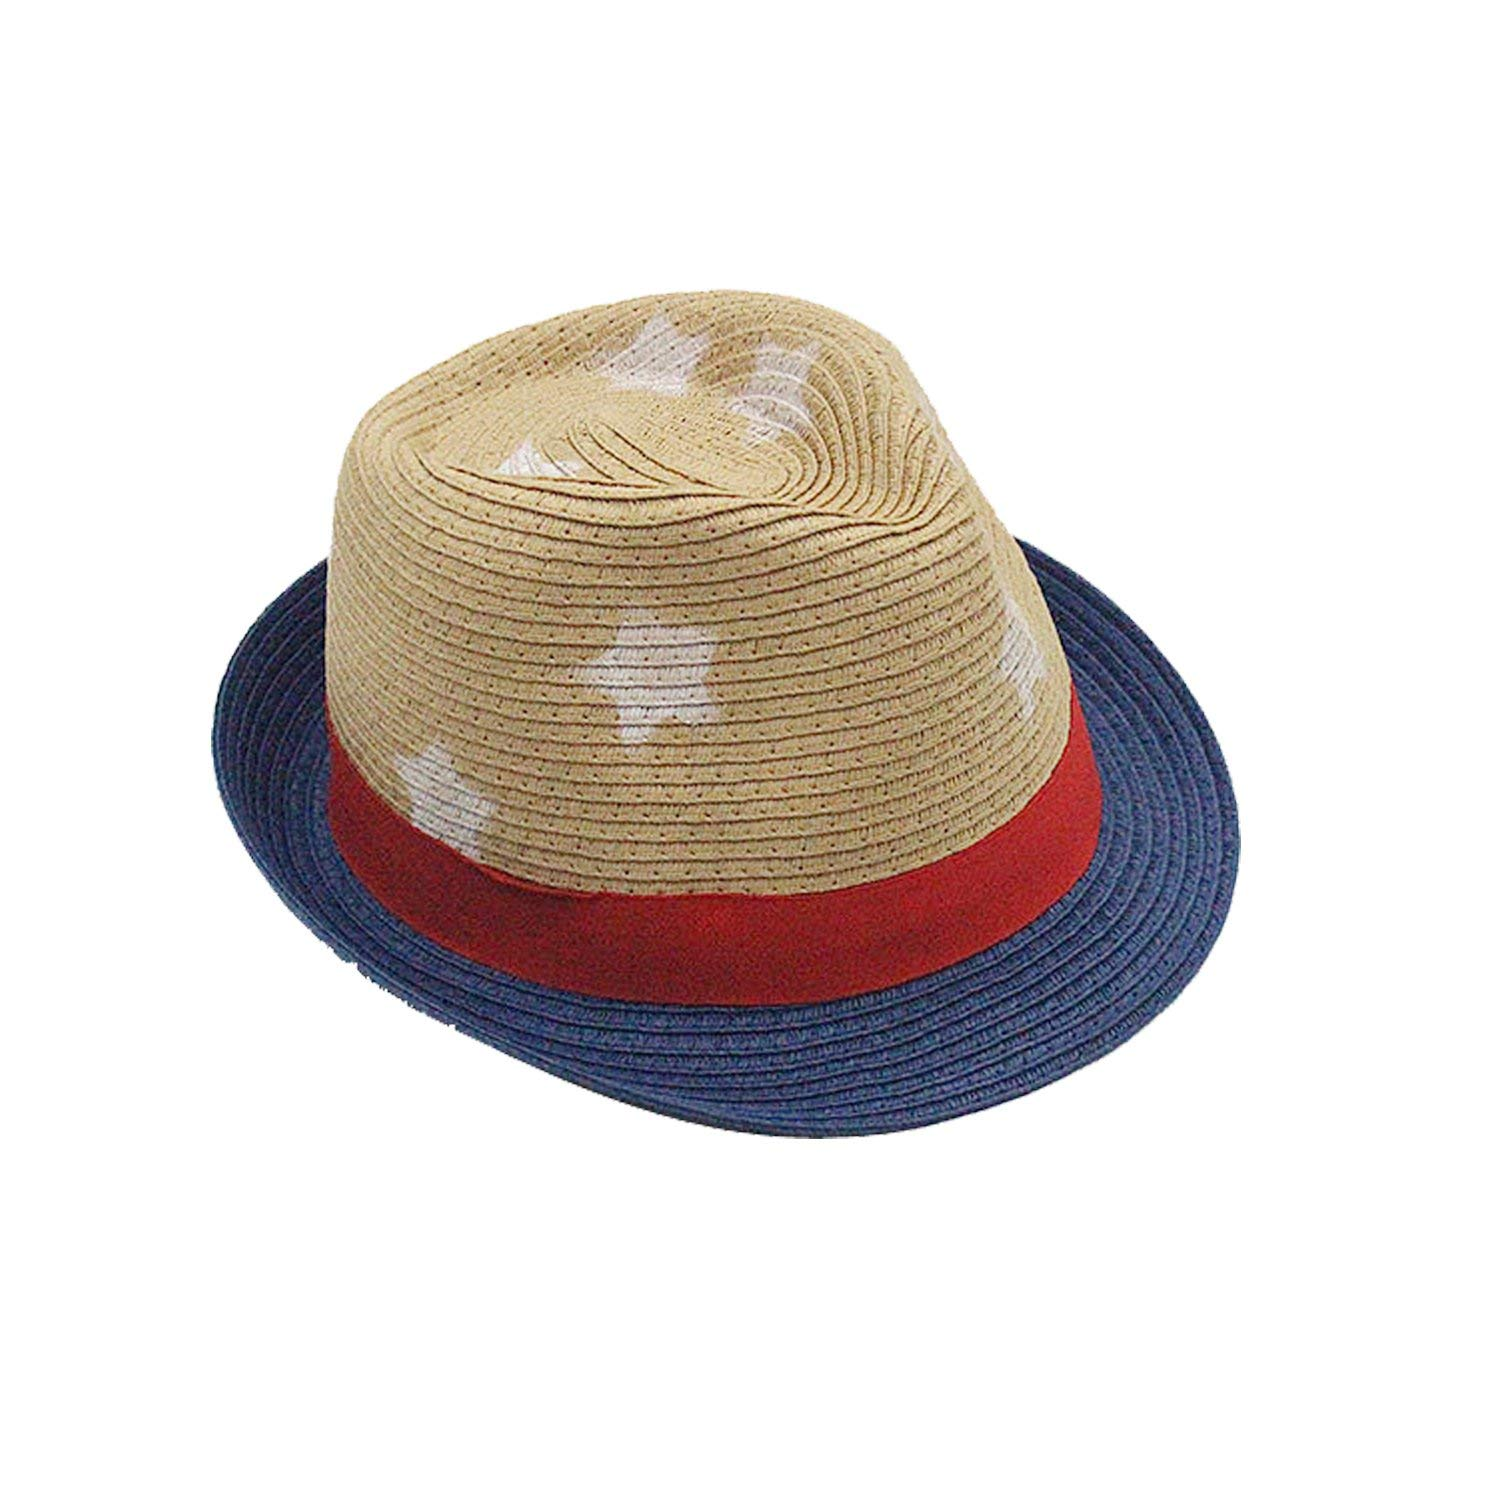 f47b619e Get Quotations · Coxeer Party Straw Hat Straw Fedora Hat Stars Printed Summer  Beach Straw Hat for Boys Girls